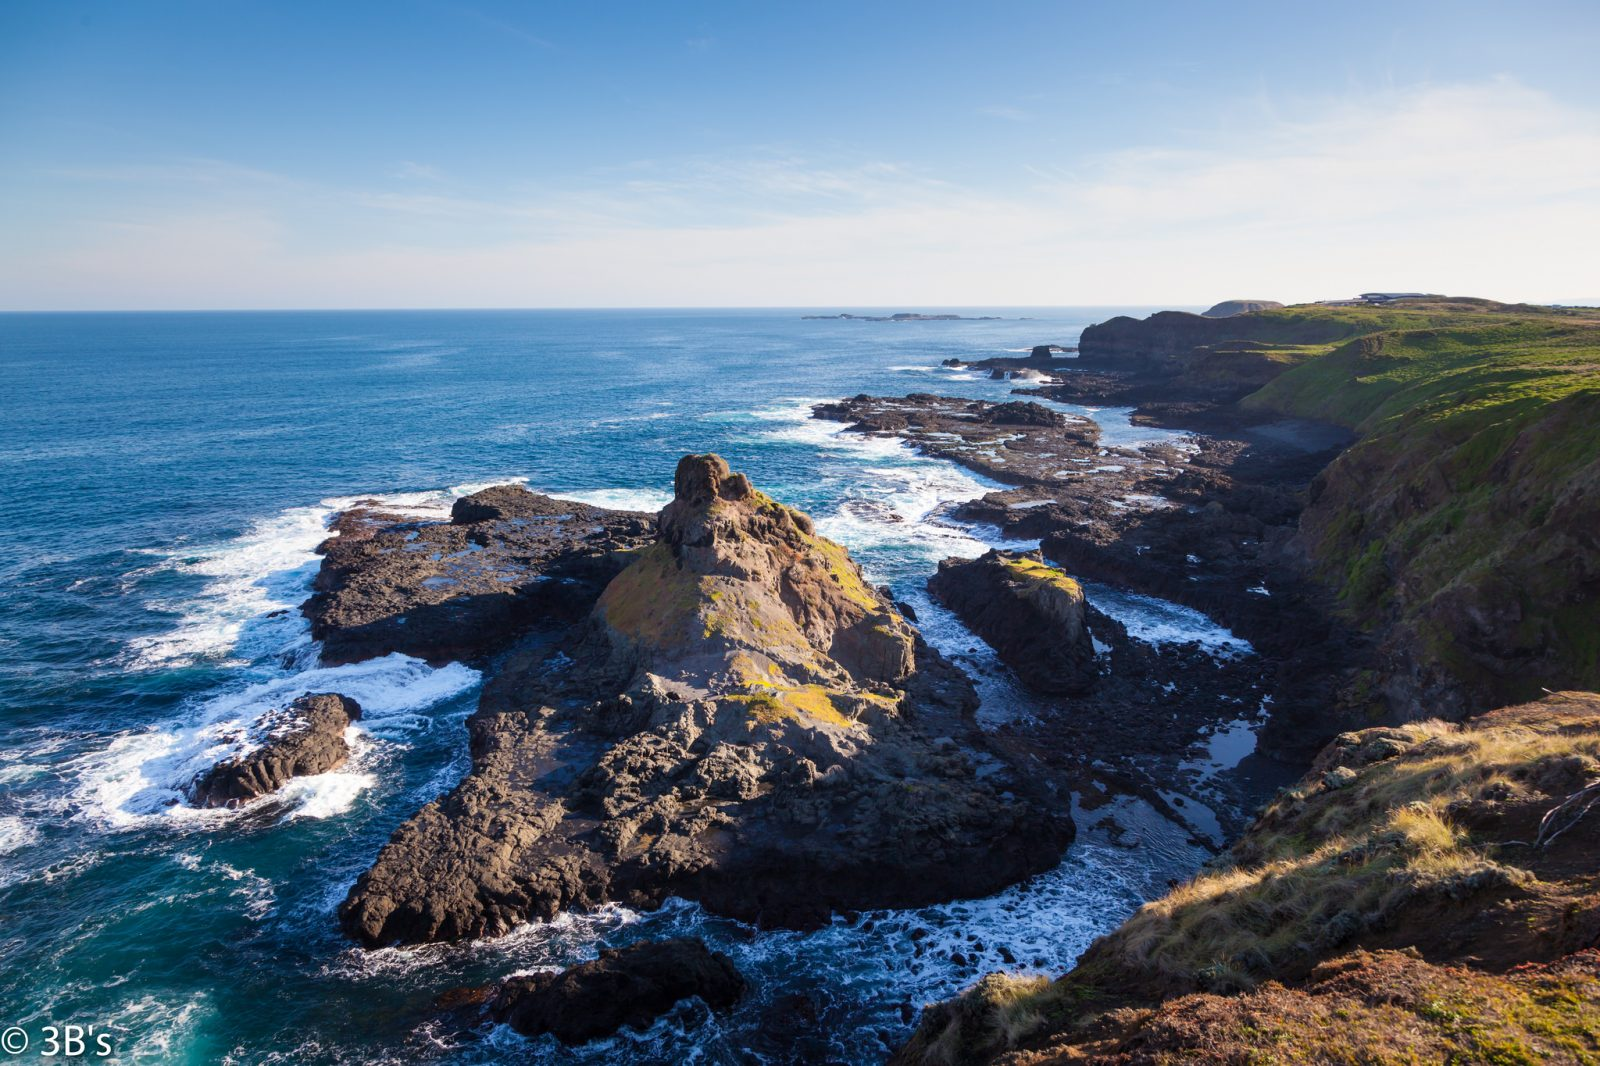 Melbourne day trips: Phillip Island coastline. Photo by The 3B's via Flickr CC.